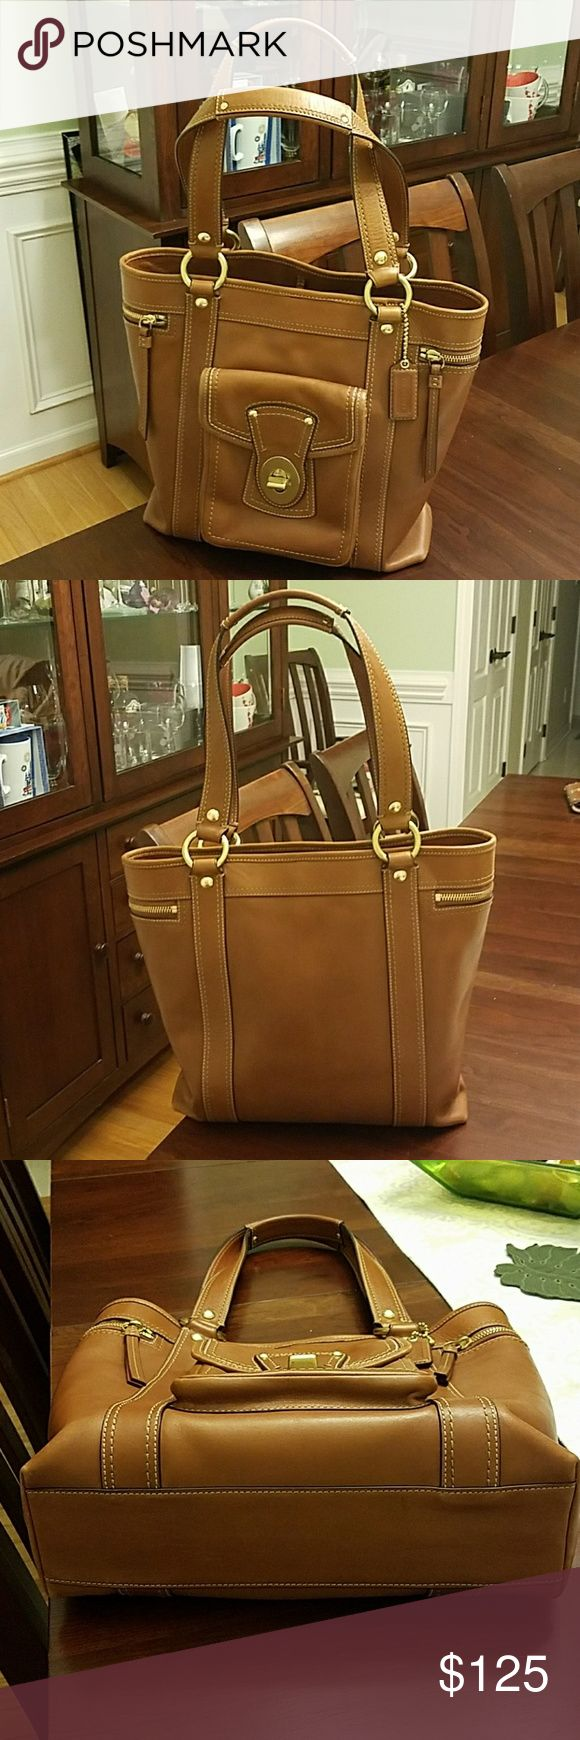 Coach Tote Bag Selling a used Coach Tote bag. Has some normal wear overall with minor stain inside. Hardly noticeable. And small pen mark. Has some normal wear on corners as pictured. Normal wear on handles. Very sturdy bag.  Color is british tan. Please no lowballing. Will consider reasonable offers. Coach Bags Totes